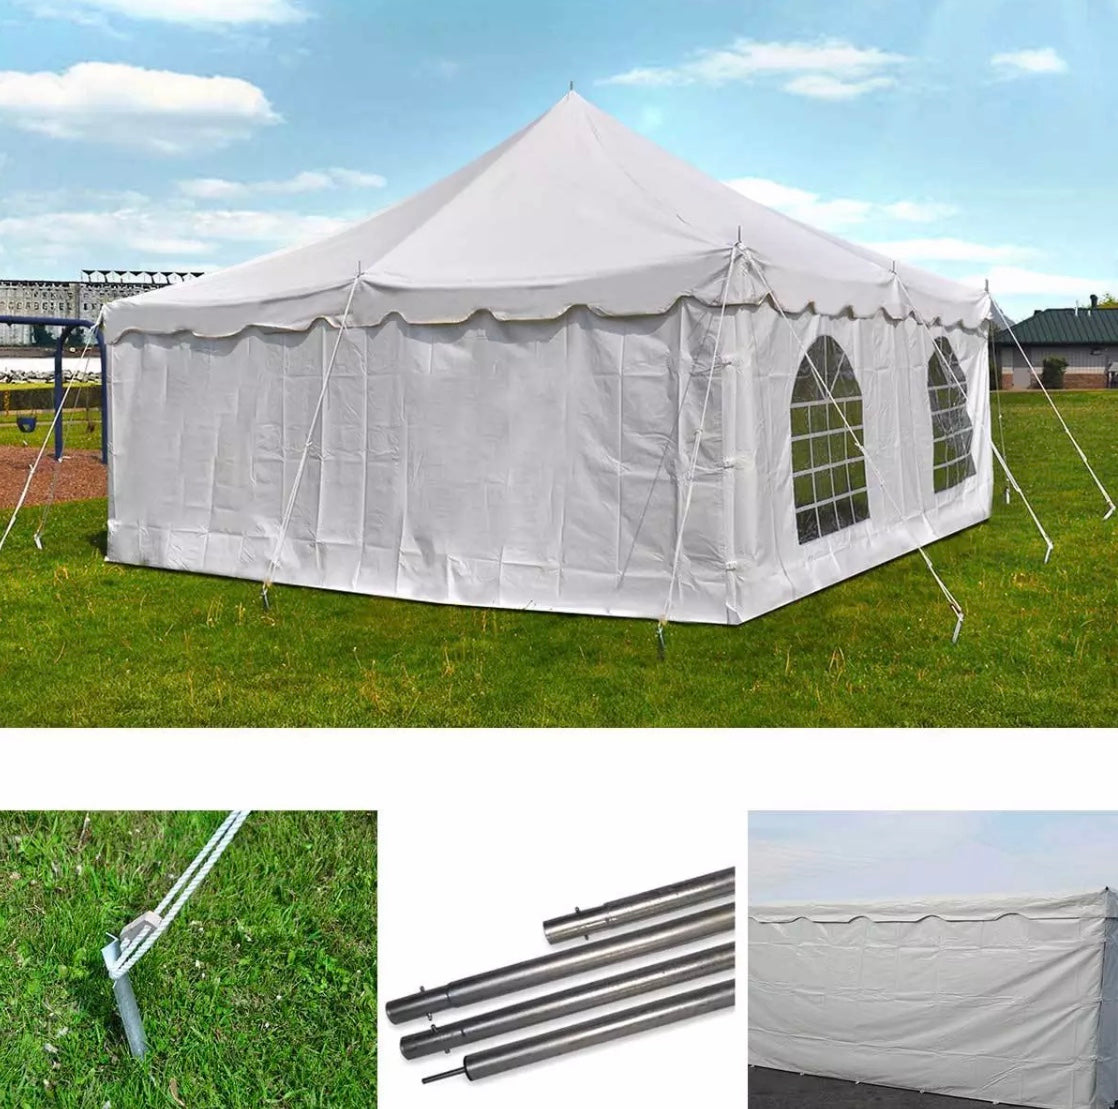 20 x 20' Commercial Pole Party tent with walls & 20 folding chairs